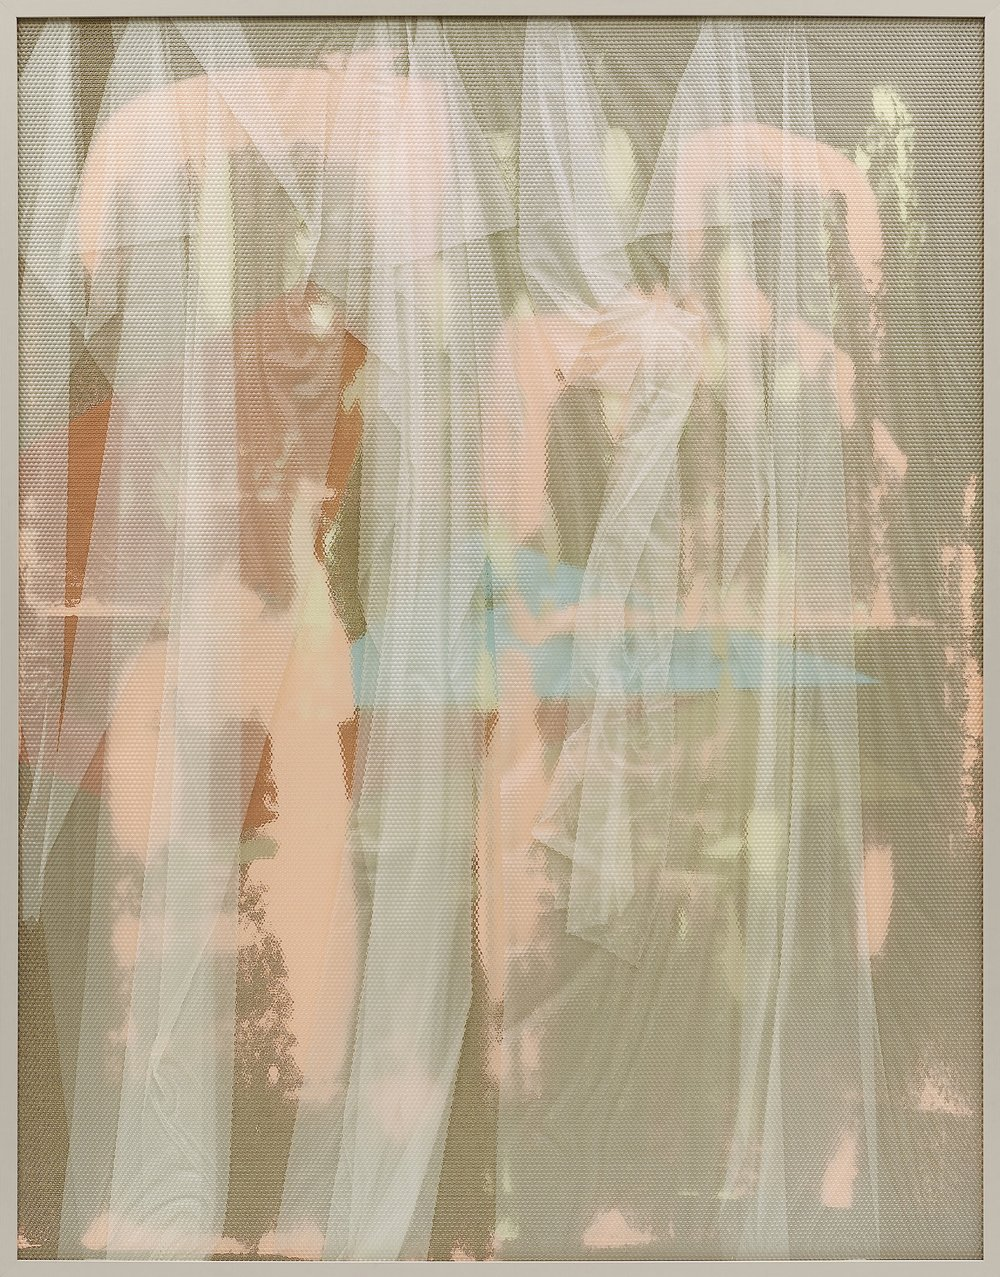 Eidolon / Part VI,  2013 Oil, acrylic and latex on canvas beneath textured Plexiglas 180 x 140 cm (71 x 55 in)